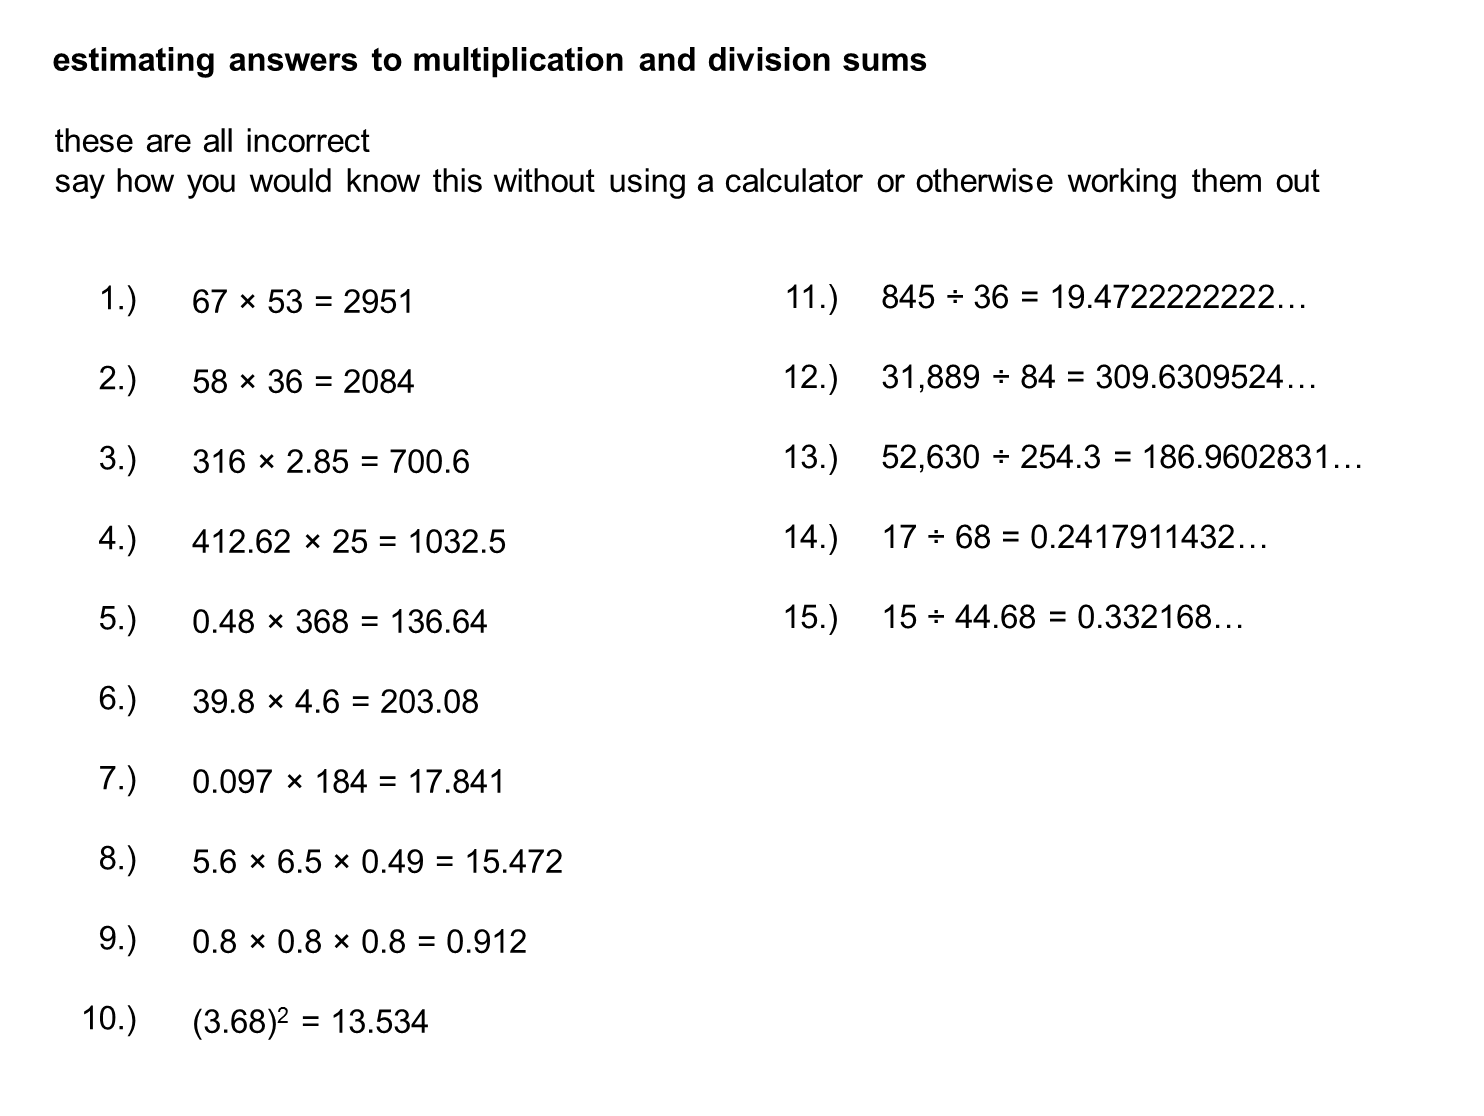 worksheet Estimating Sums And Differences Worksheets worksheet estimating sums gabrieltoz worksheets for elementary quiz the sum difference between two print decimals worksheet